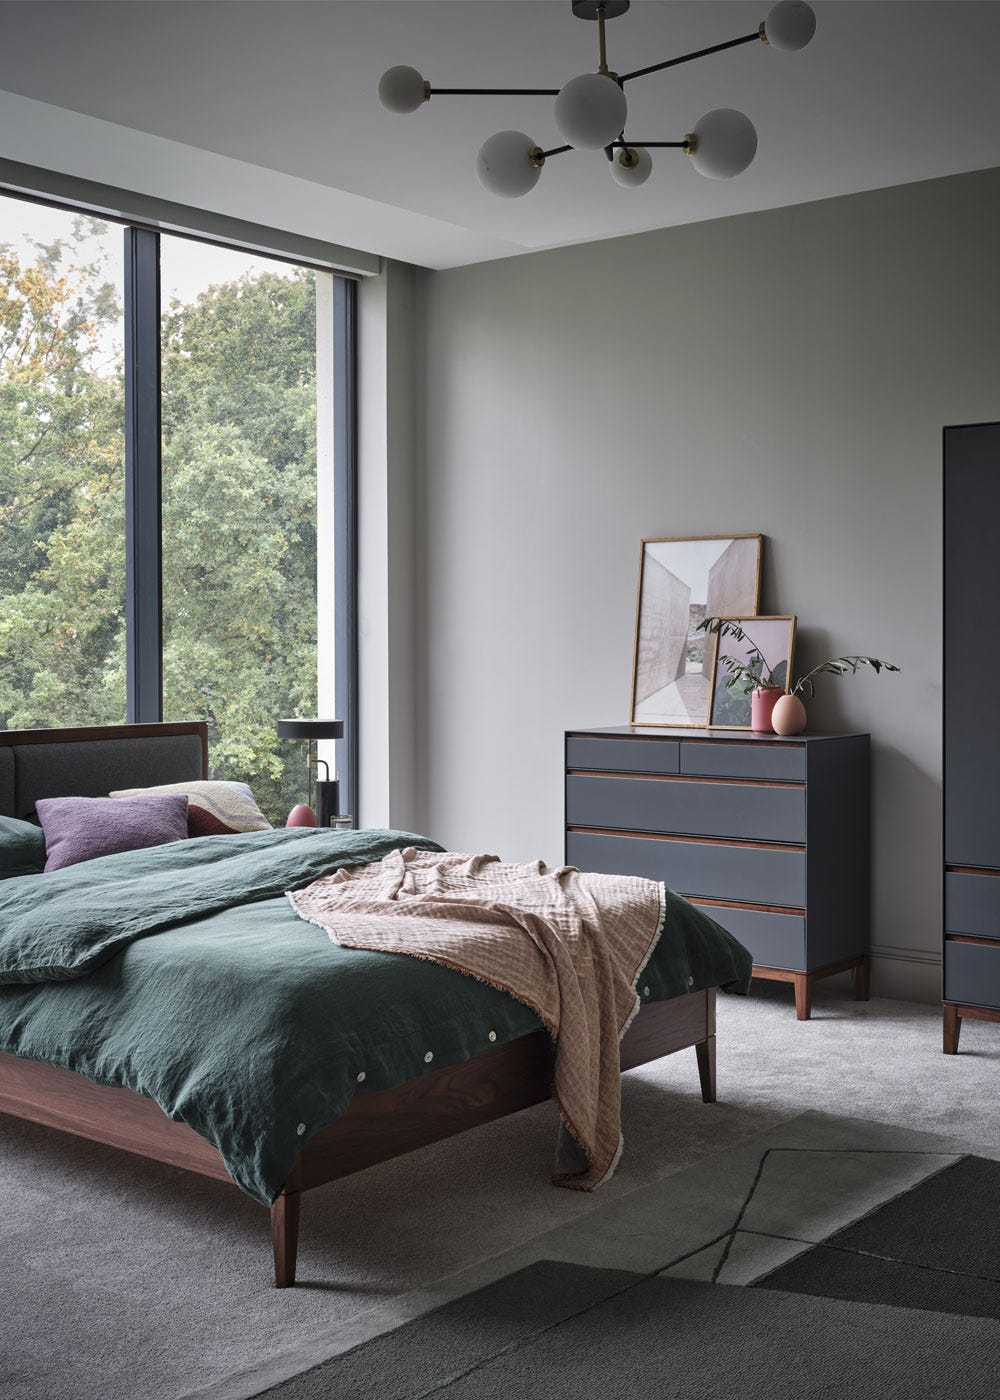 As shown: Balance Multi Arm Chandelier Flush, Lars Bedroom Collection.